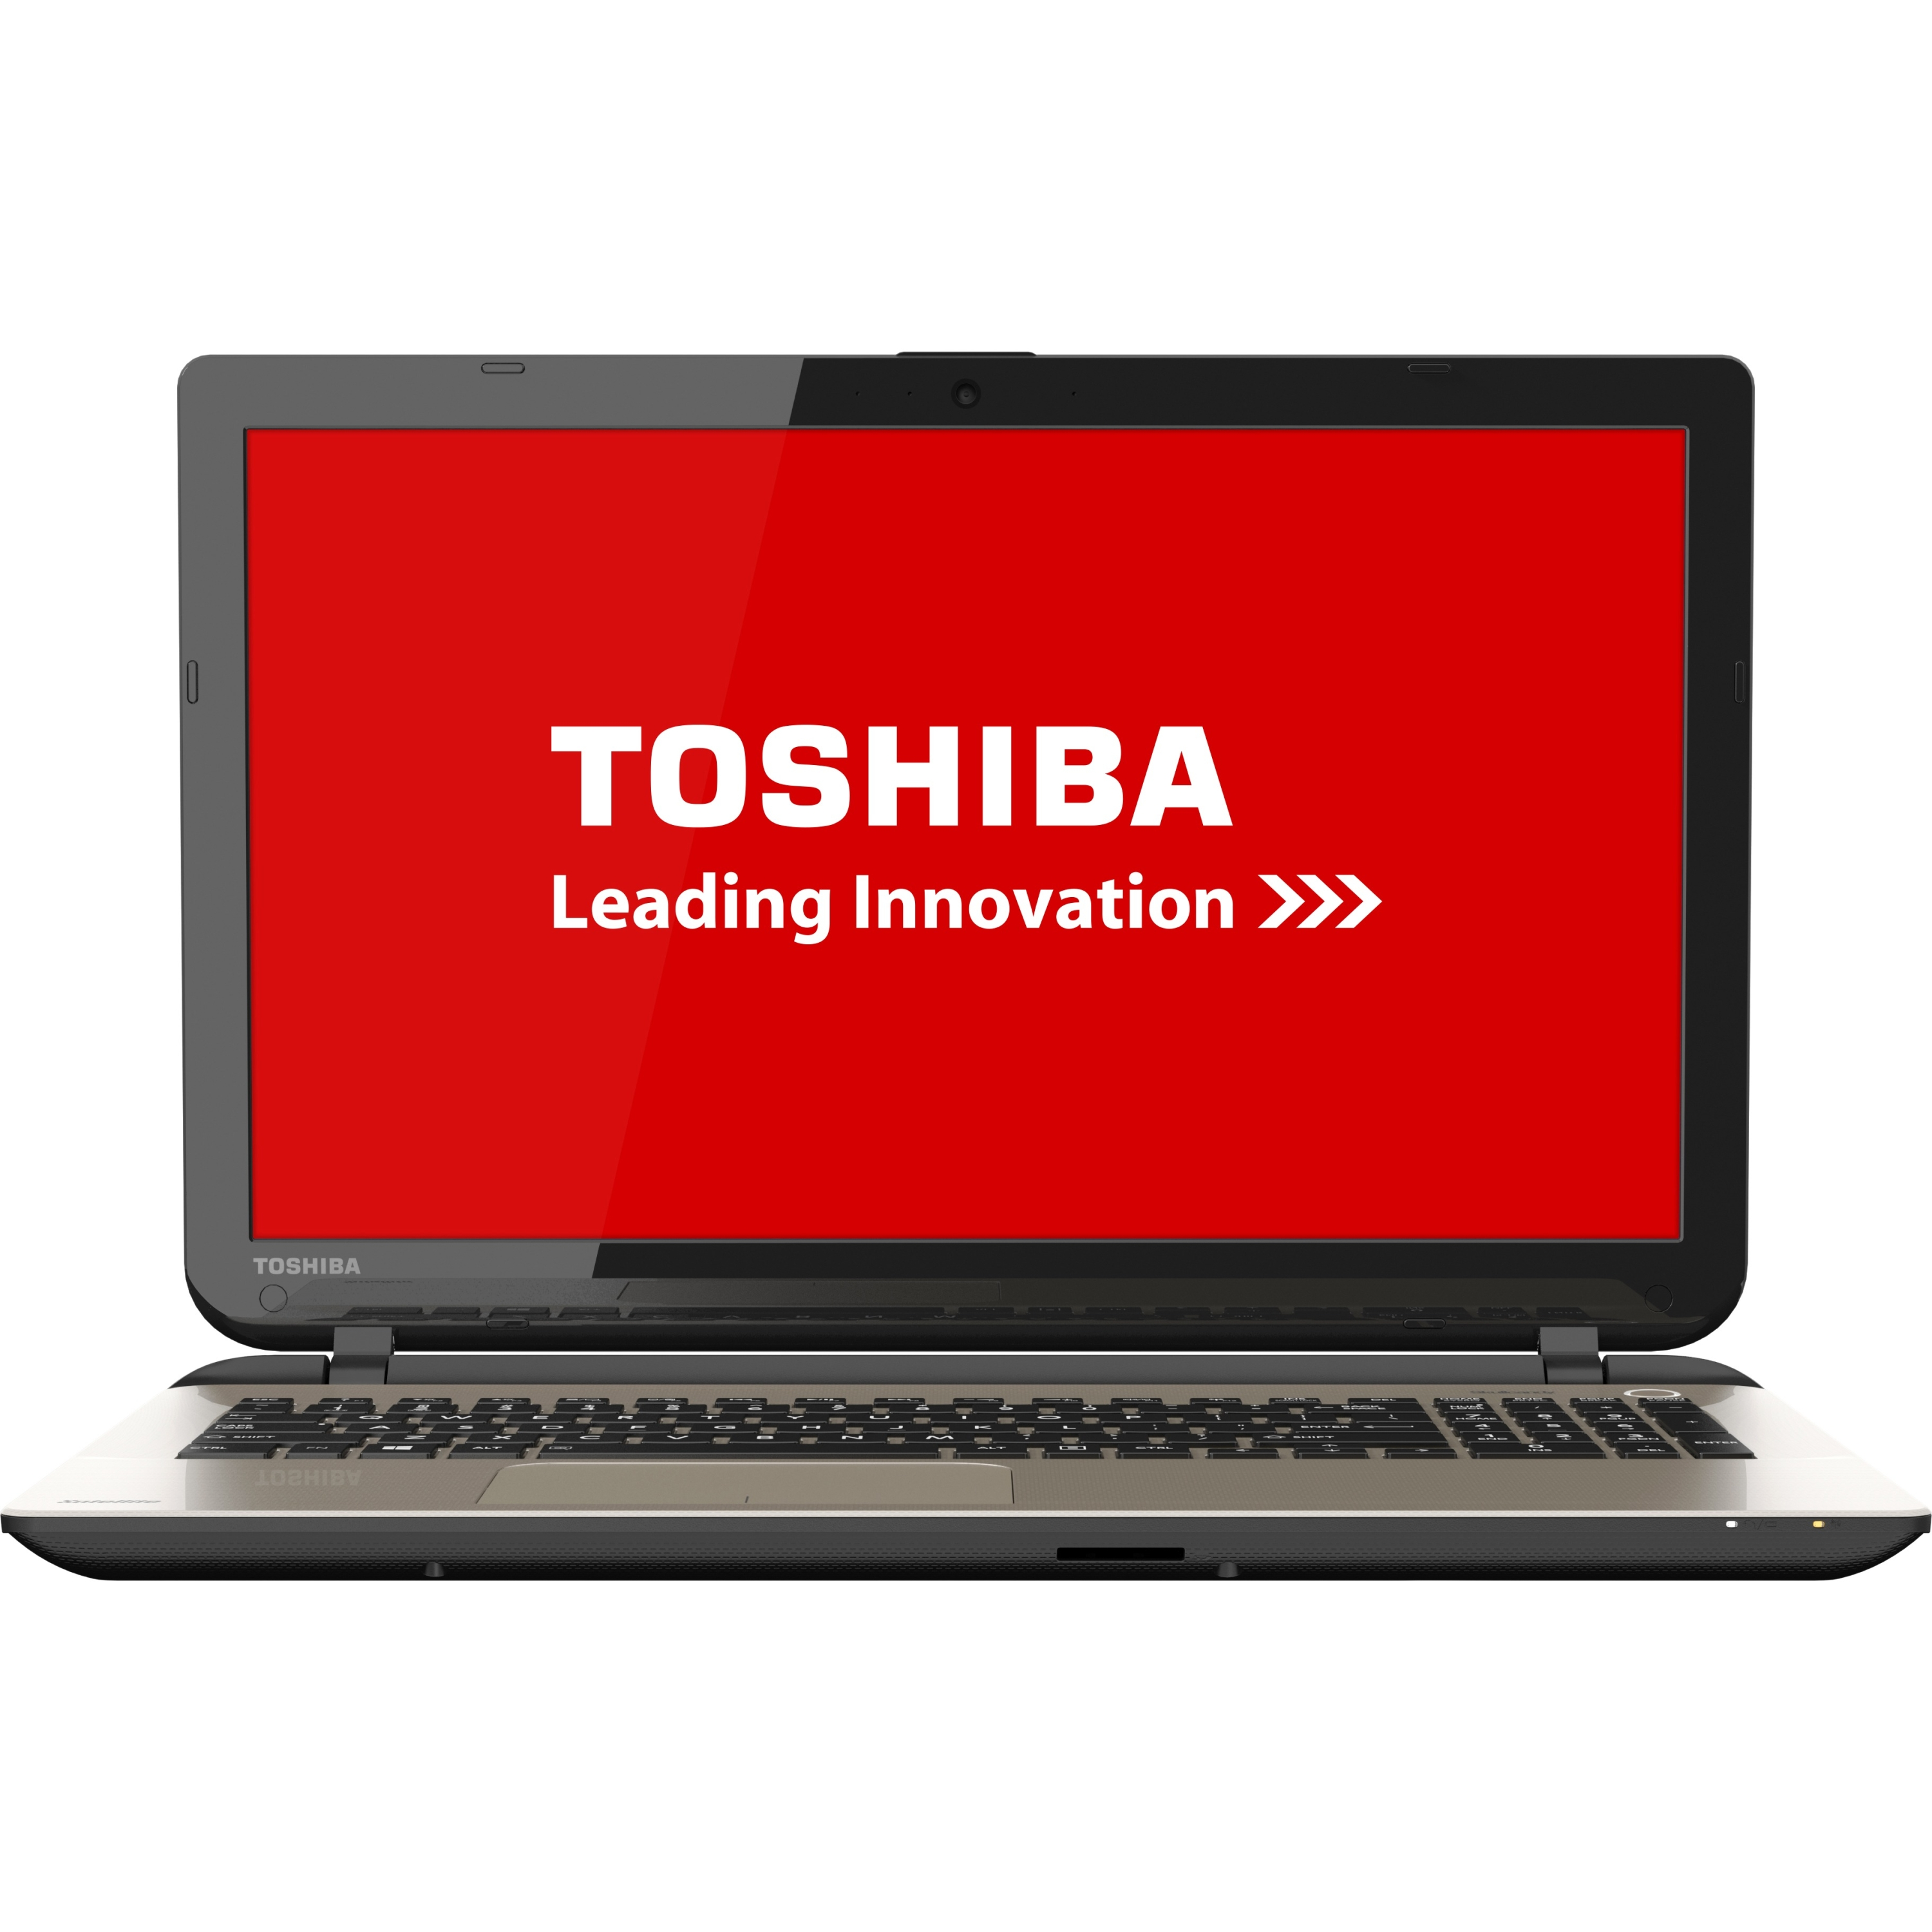 "Toshiba Satellite L55-B5276 15.6"" (TruBrite) Notebook - Intel (Refurbished)"